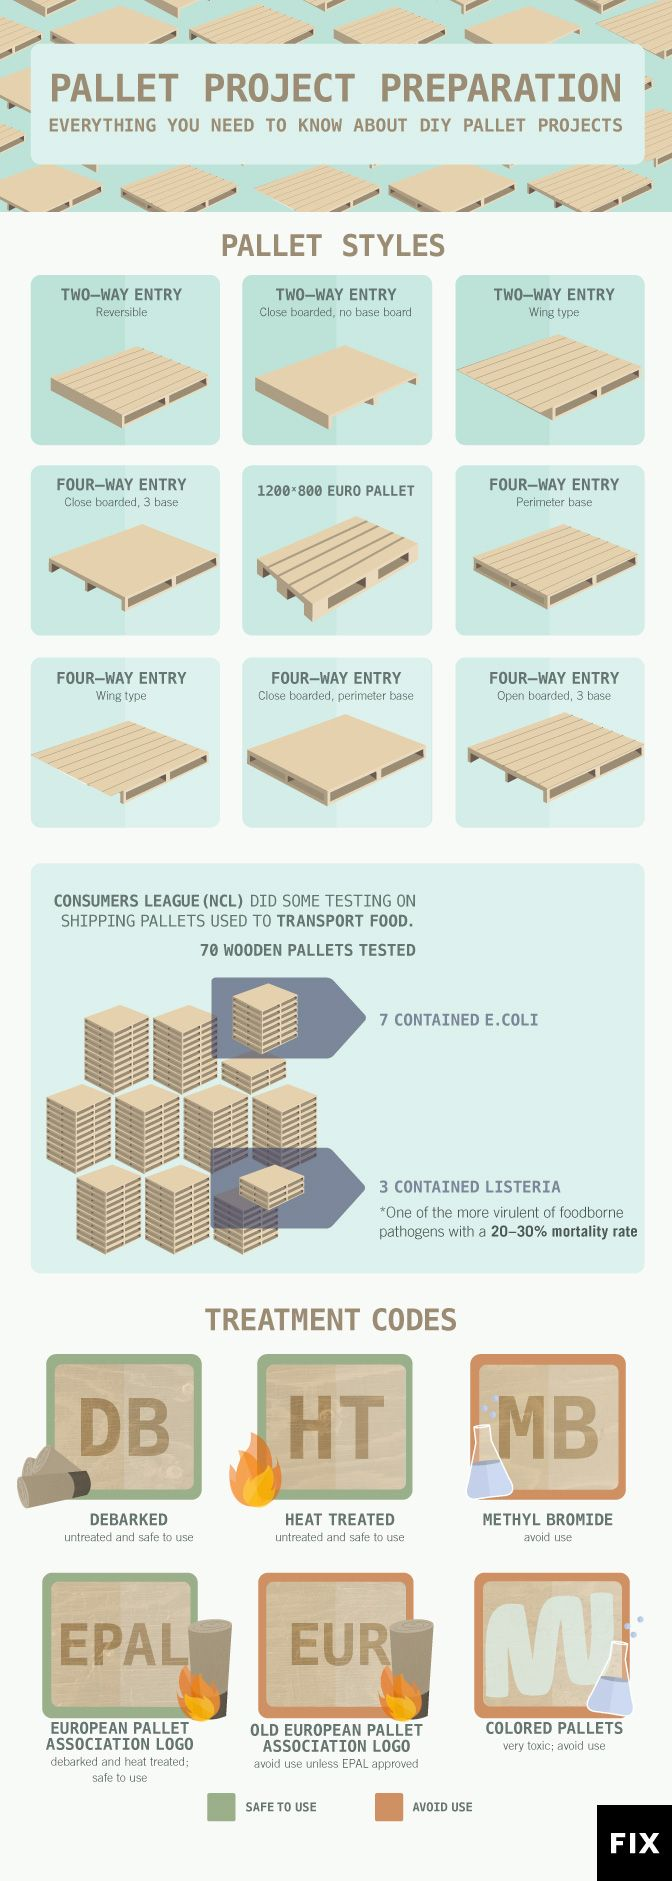 From choosing the right pallet, to getting your pallets up to snuff, ensure that your project finishes well with these upcycle tips. #palletprojects http://www.fix.com/blog/preparing-wood-pallets-for-upcycling/